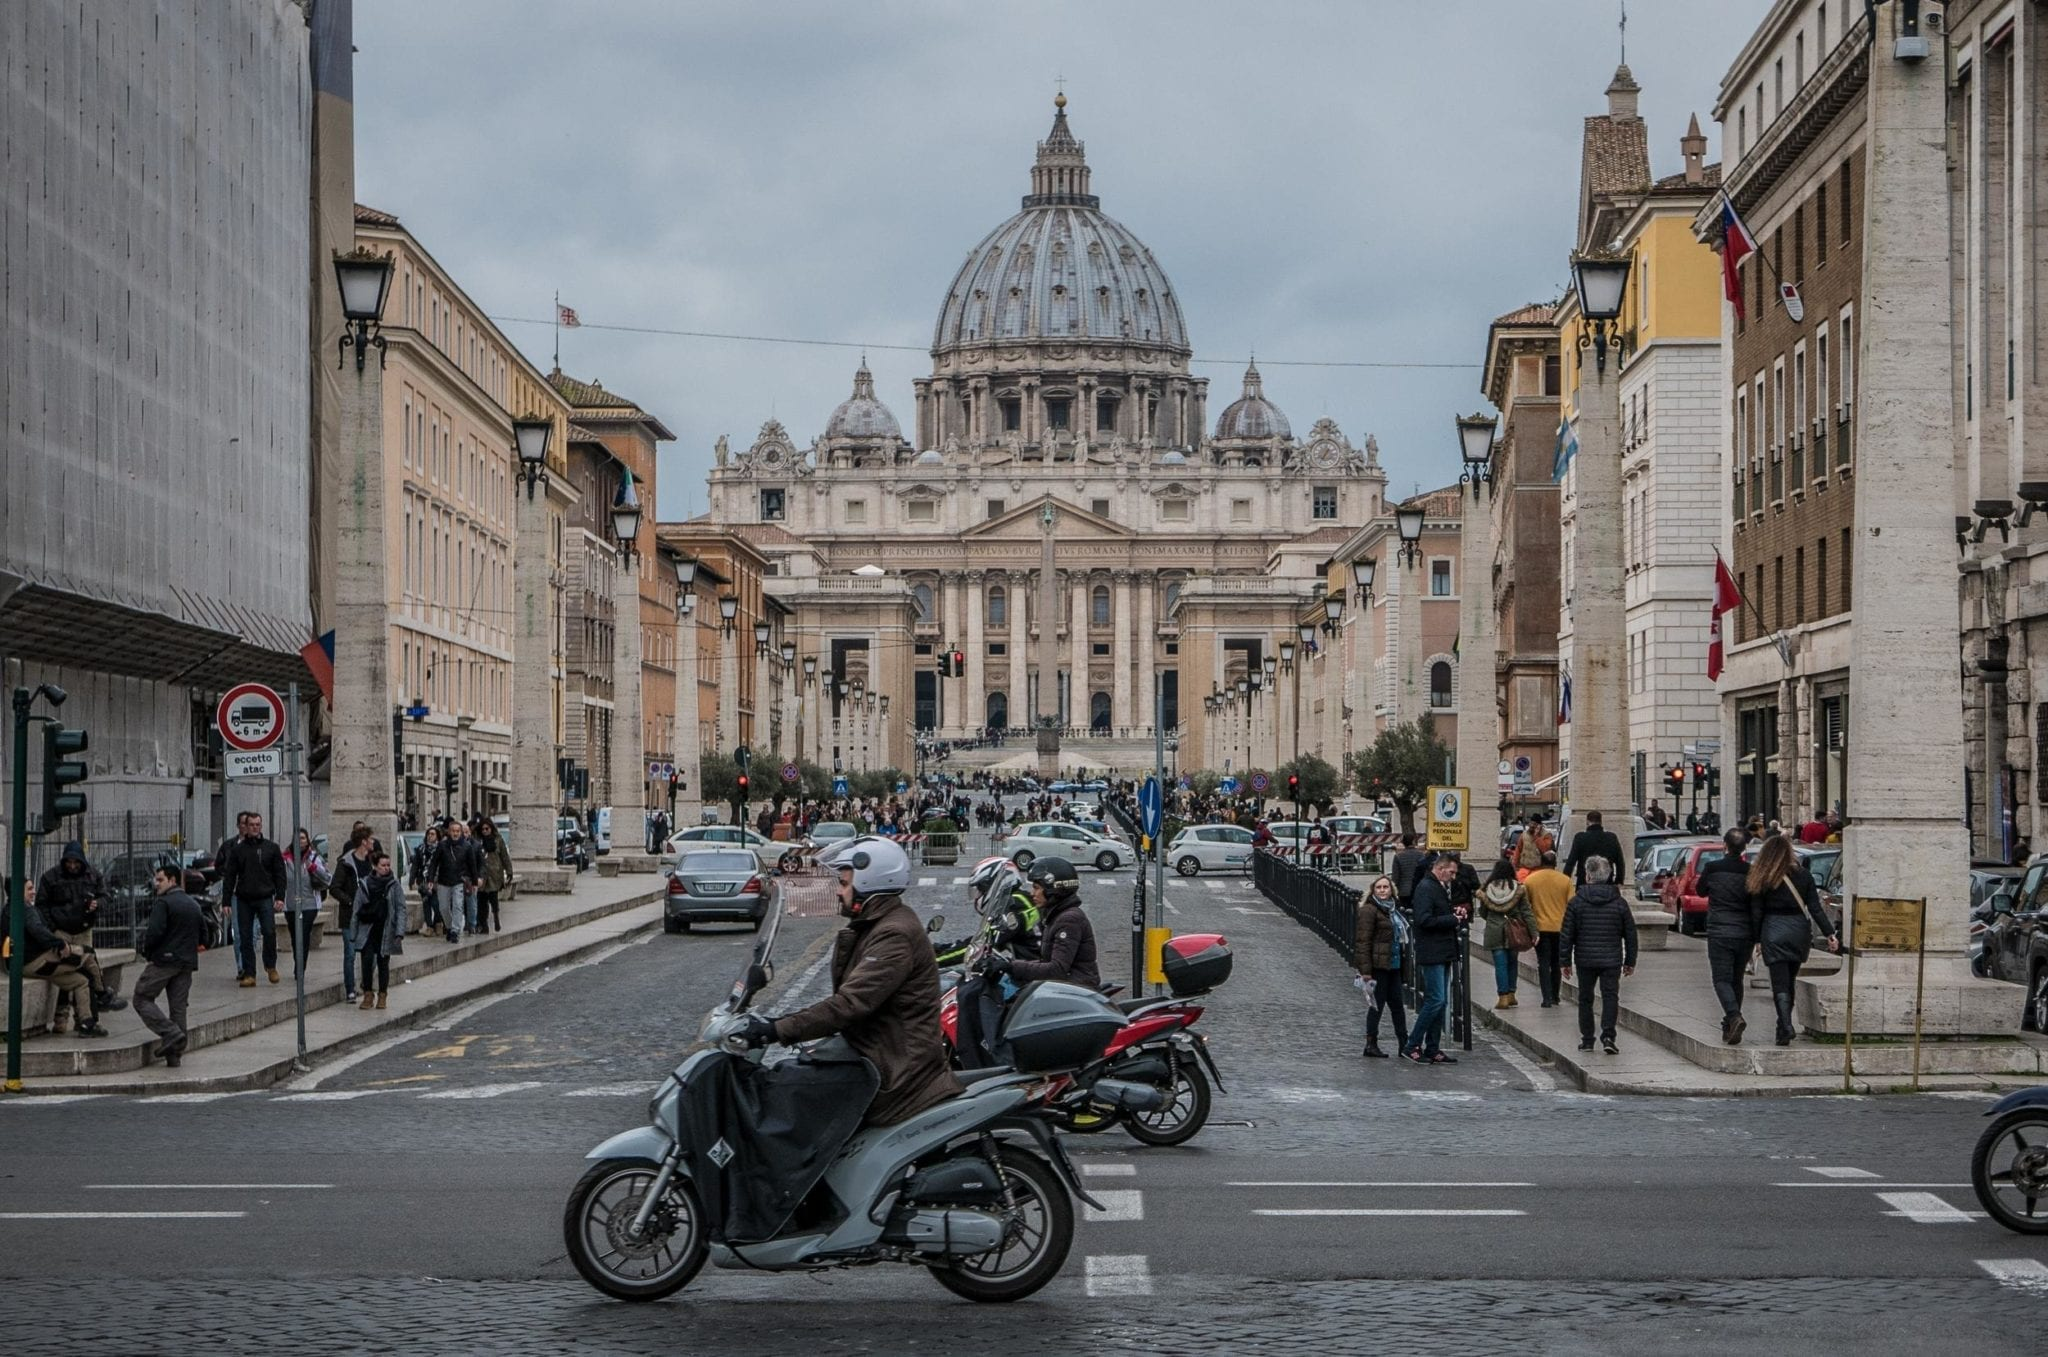 A street view of Rome with a man on a motorbike in front of the large dome of St. Peter's Basilica.